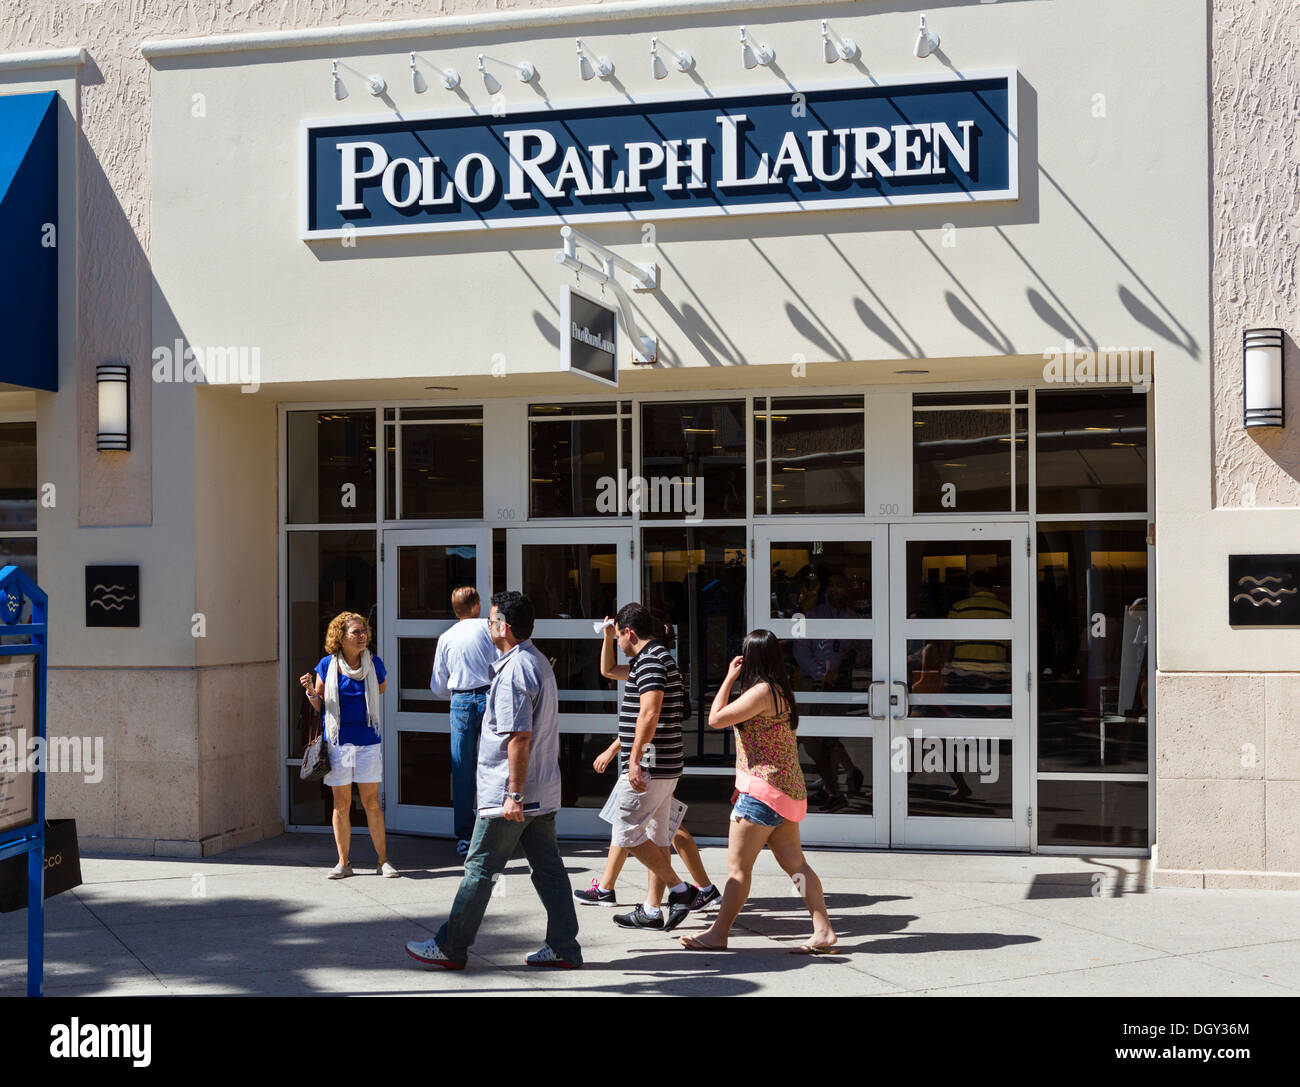 Polo Ralph Lauren outlet store at Orlando Premium Outlets Mall, Vineland Avenue, Lake Buena Vista, Orlando, Central Florida, USA - Stock Image